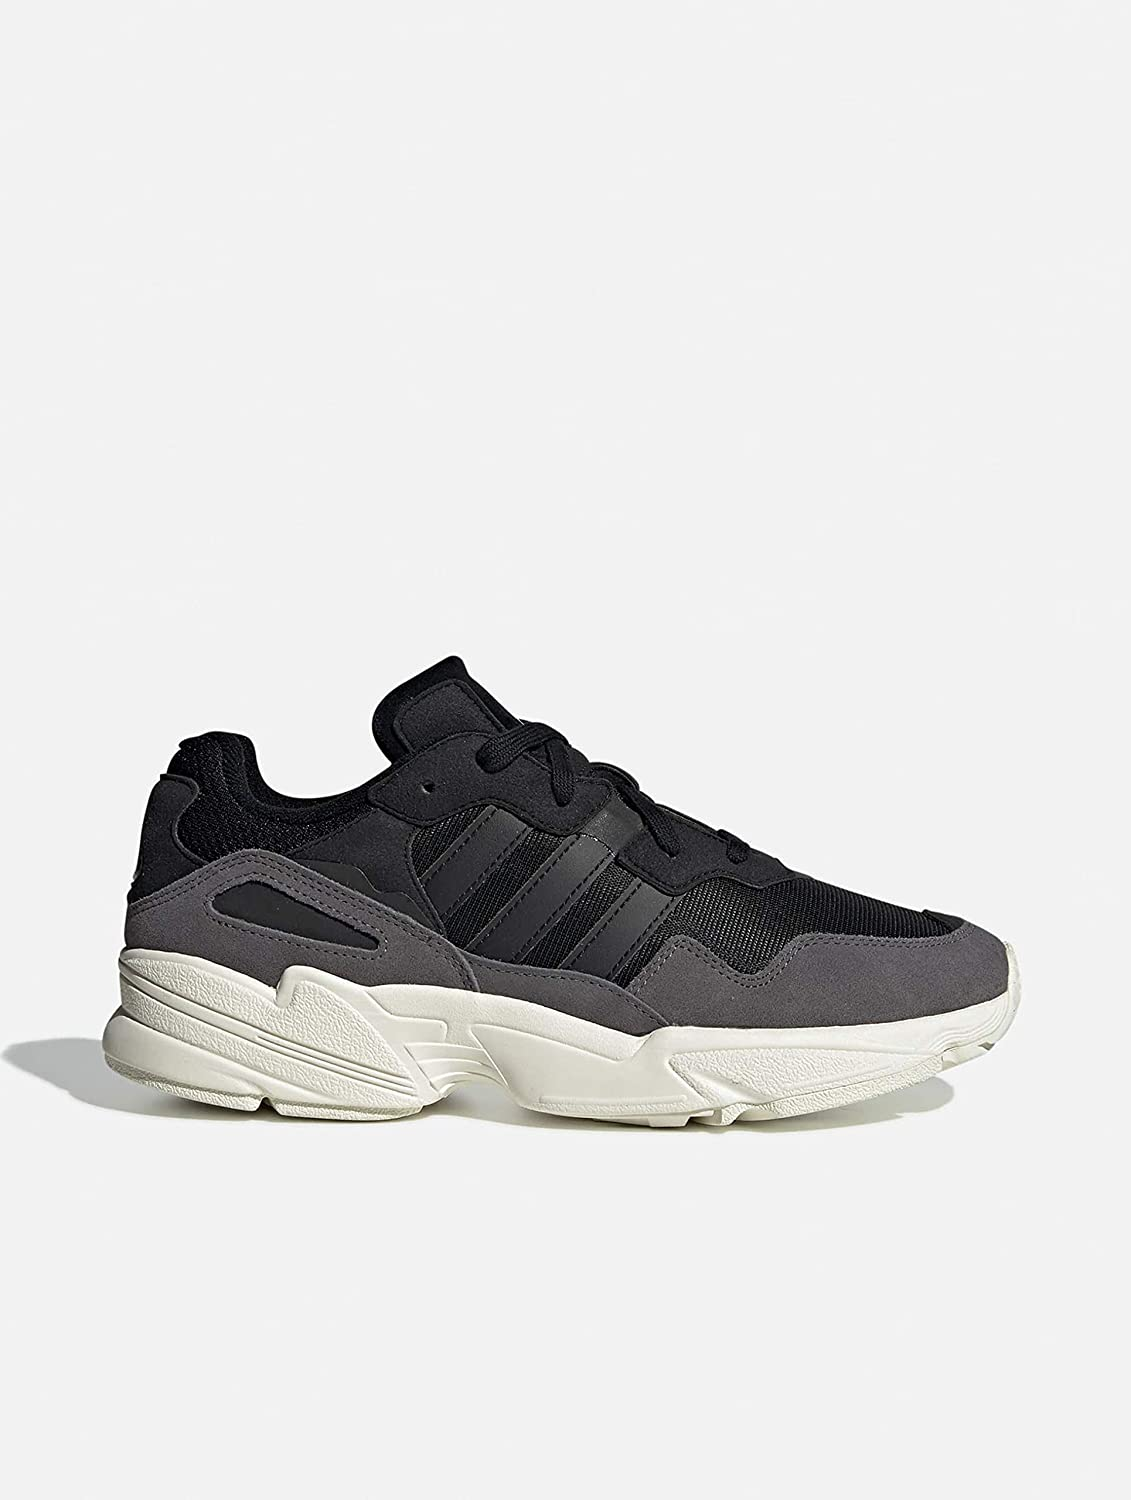 adidas Yung-96, Sneakers Basses Homme Multicolore Core Black Core Black Off White Ee7245